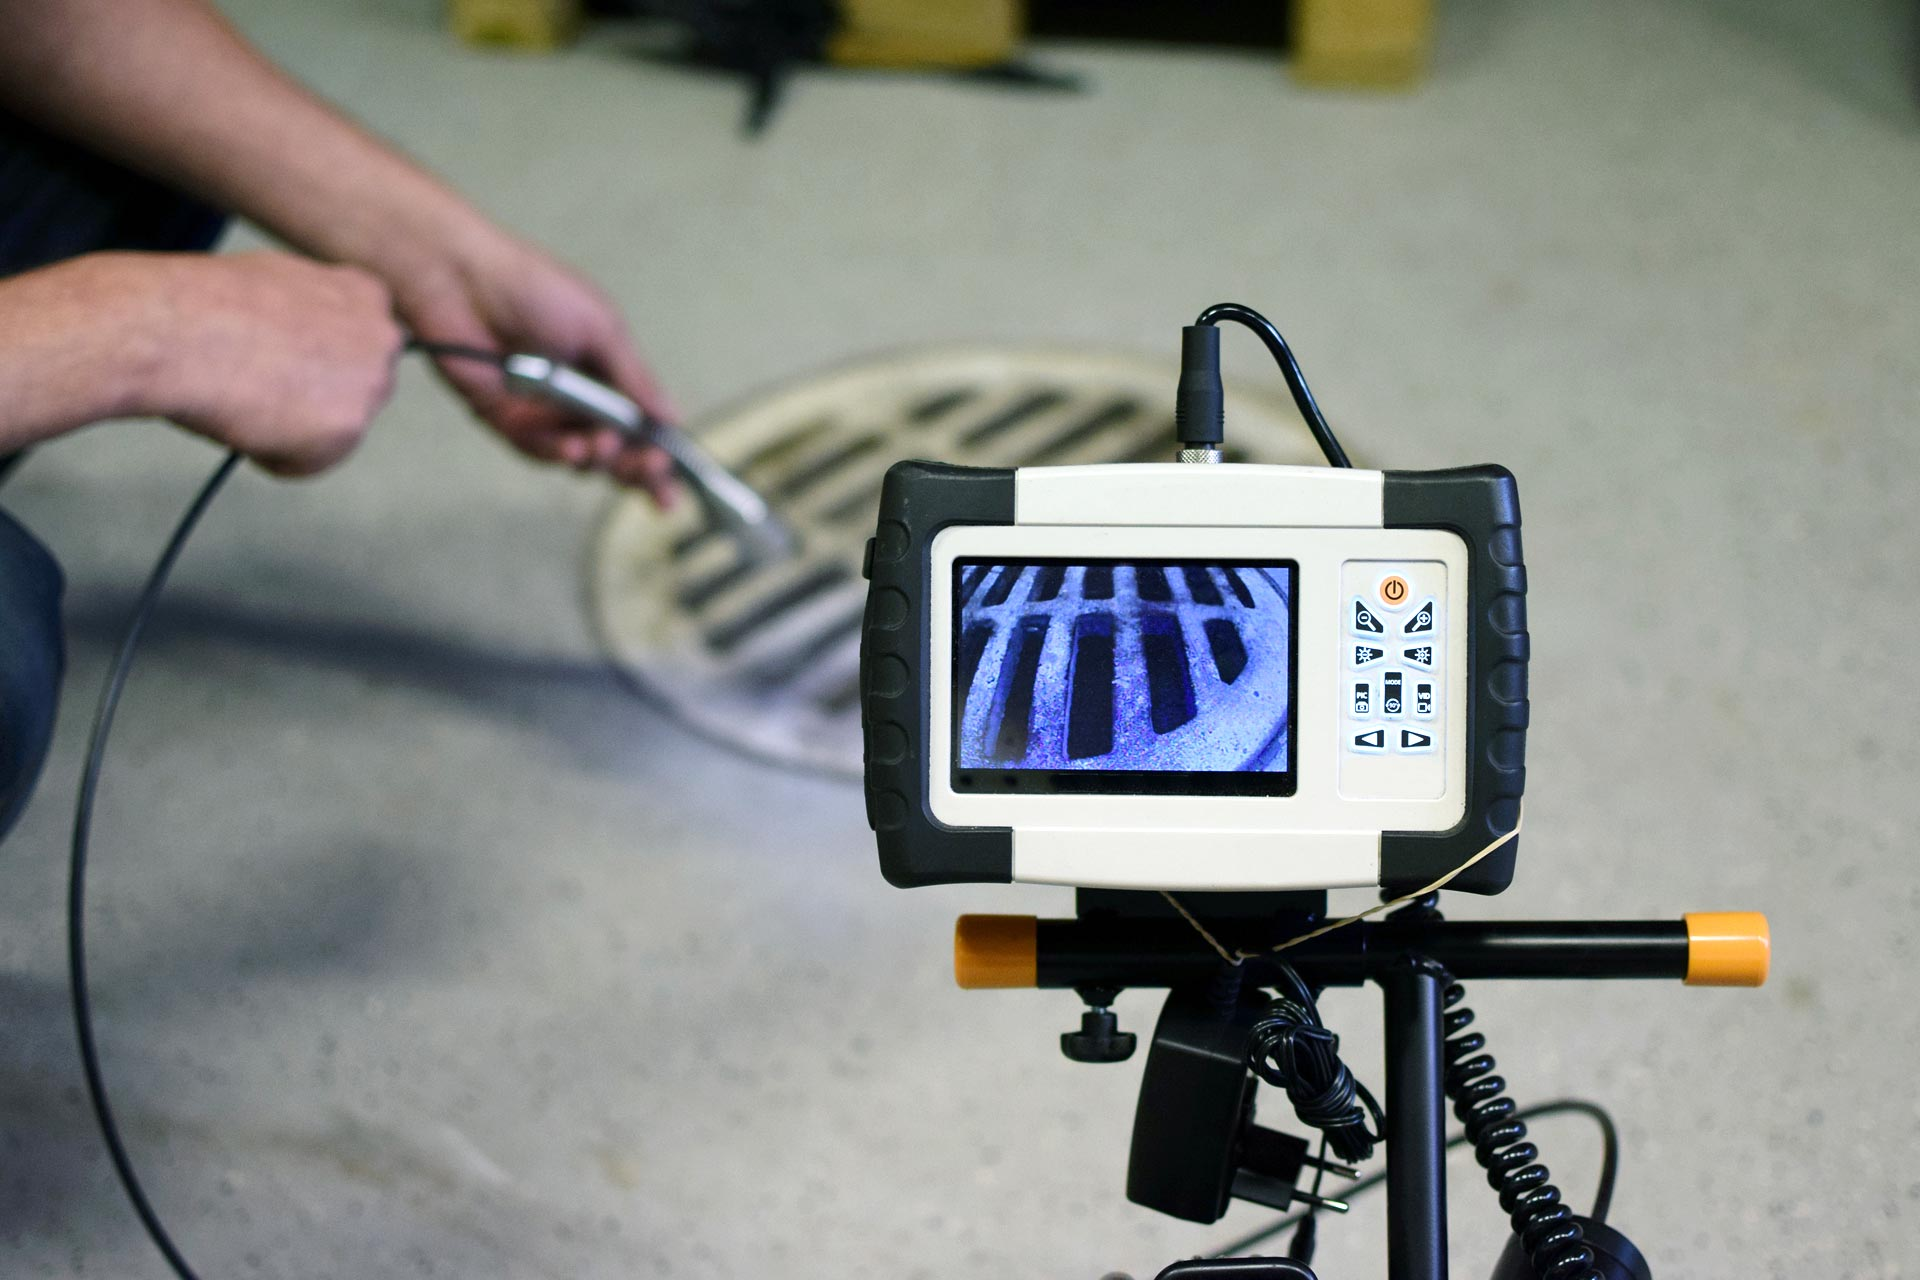 Checking sewer manhole with borescope inspection camera